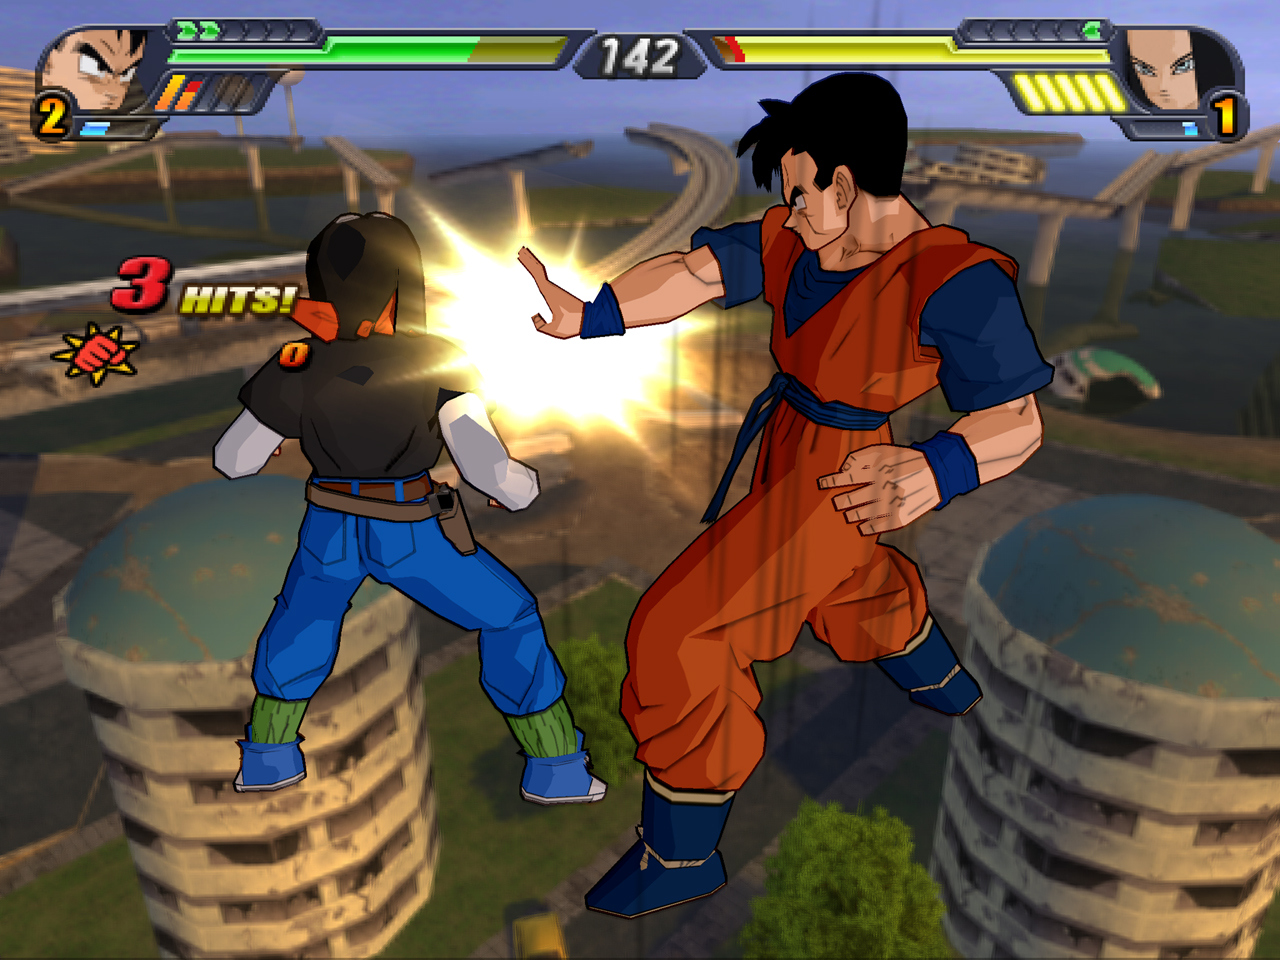 dragon ball z budokai tenkaichi 3 free download for ppsspp